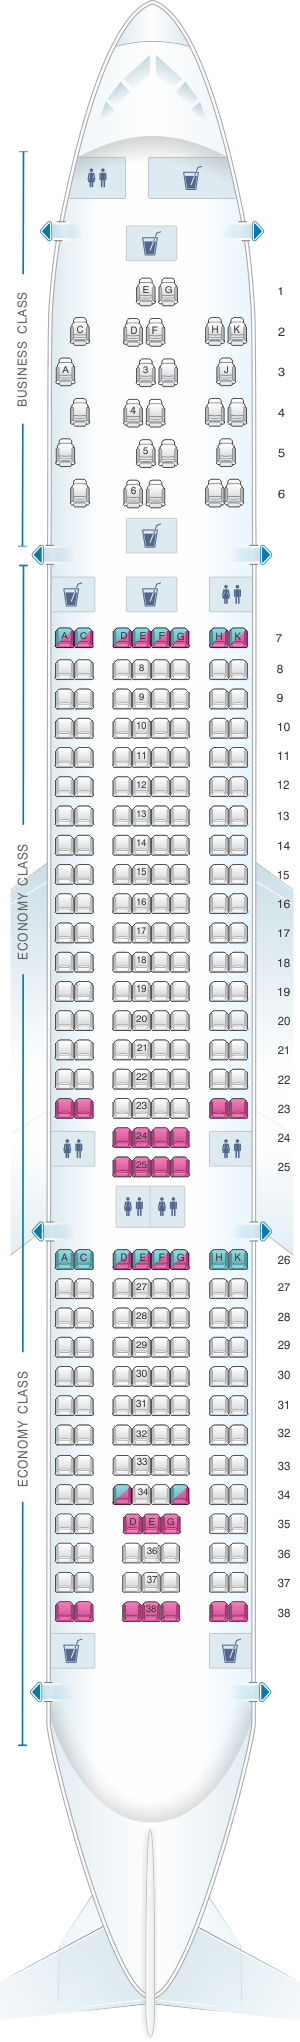 Seat map for TAP Air Portugal Airbus A330 200 V2